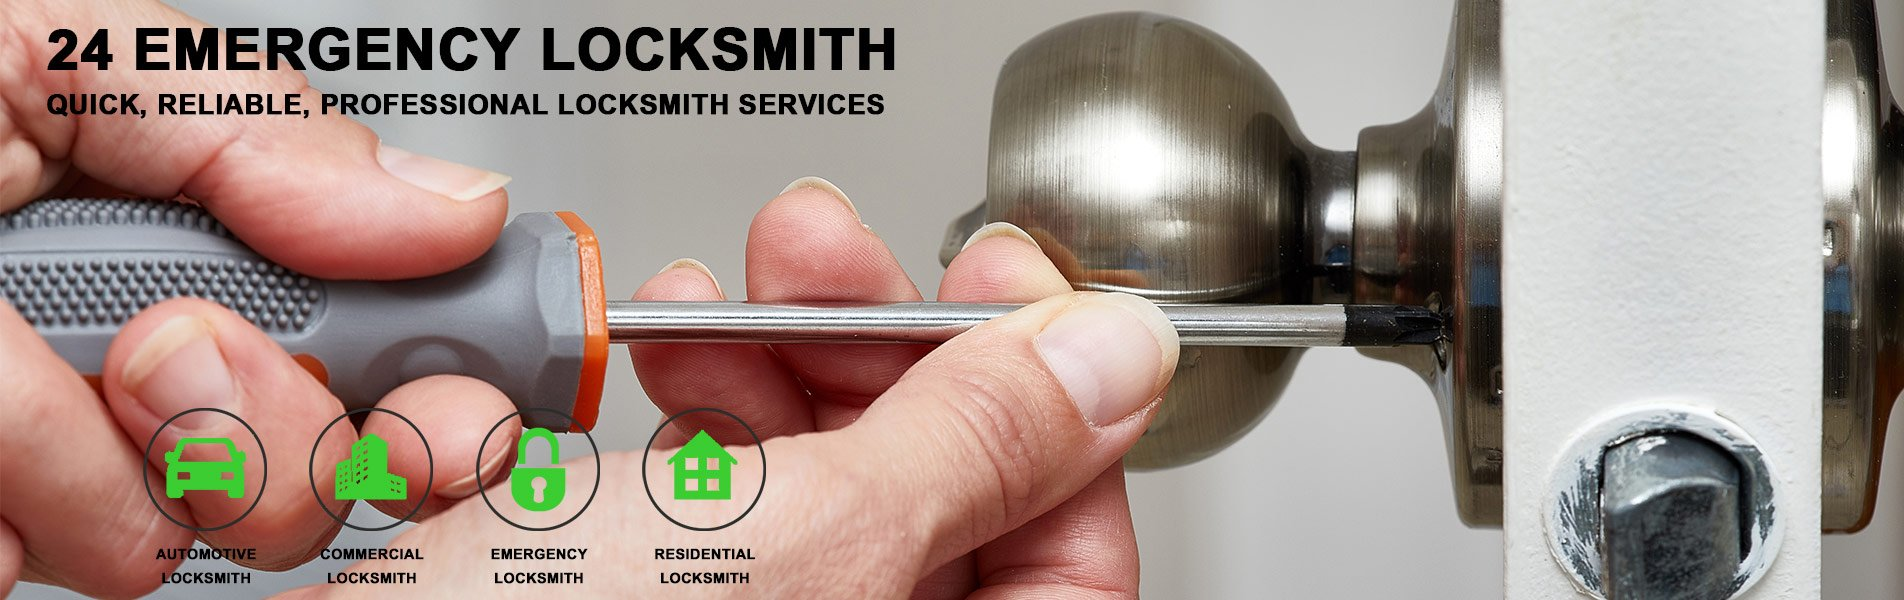 Lock Locksmith Services Hillside, IL 708-290-9033